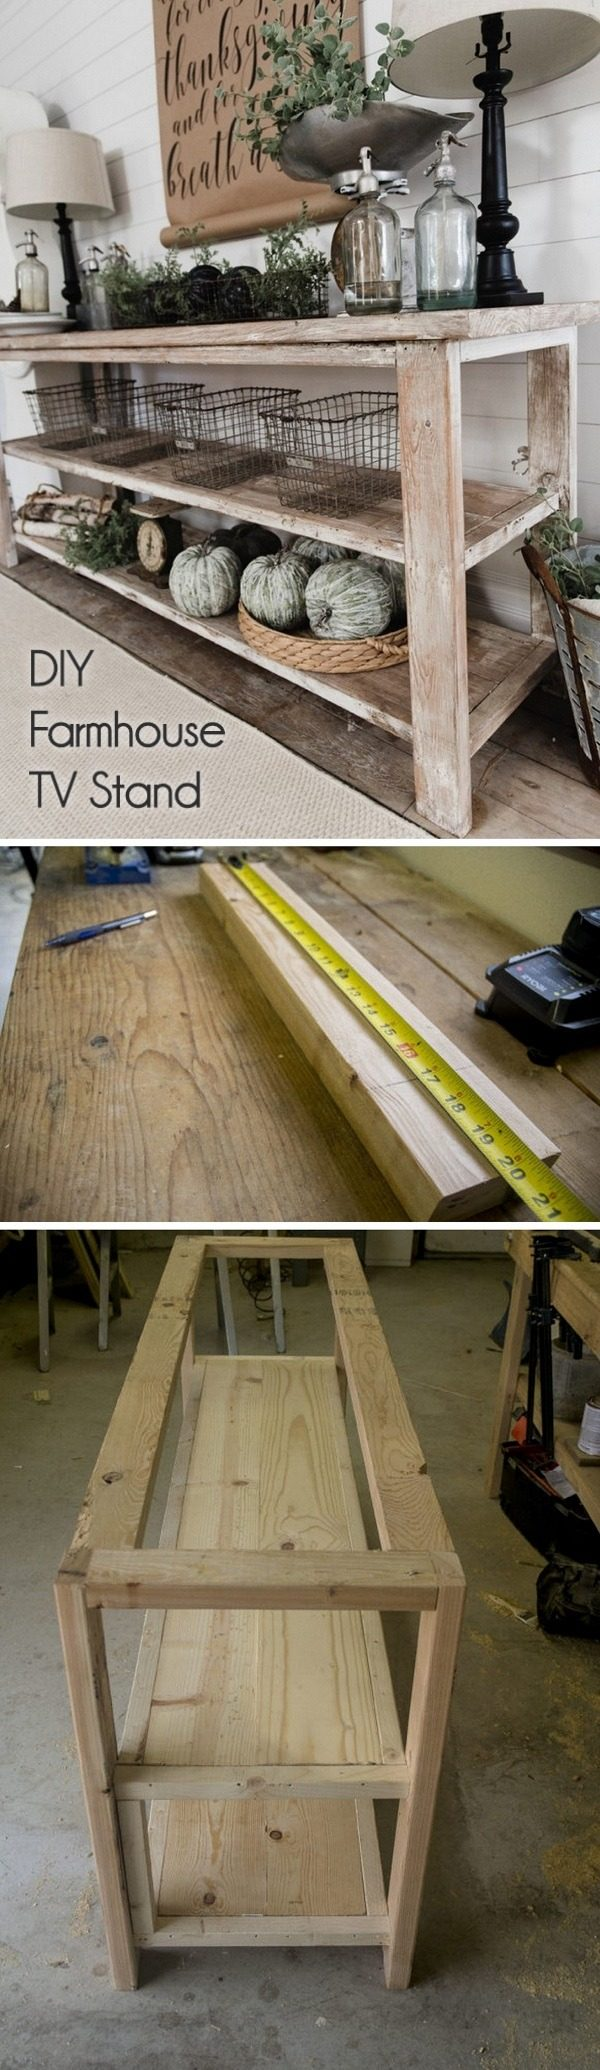 Check out how to build a DIY farmhouse style tv stand